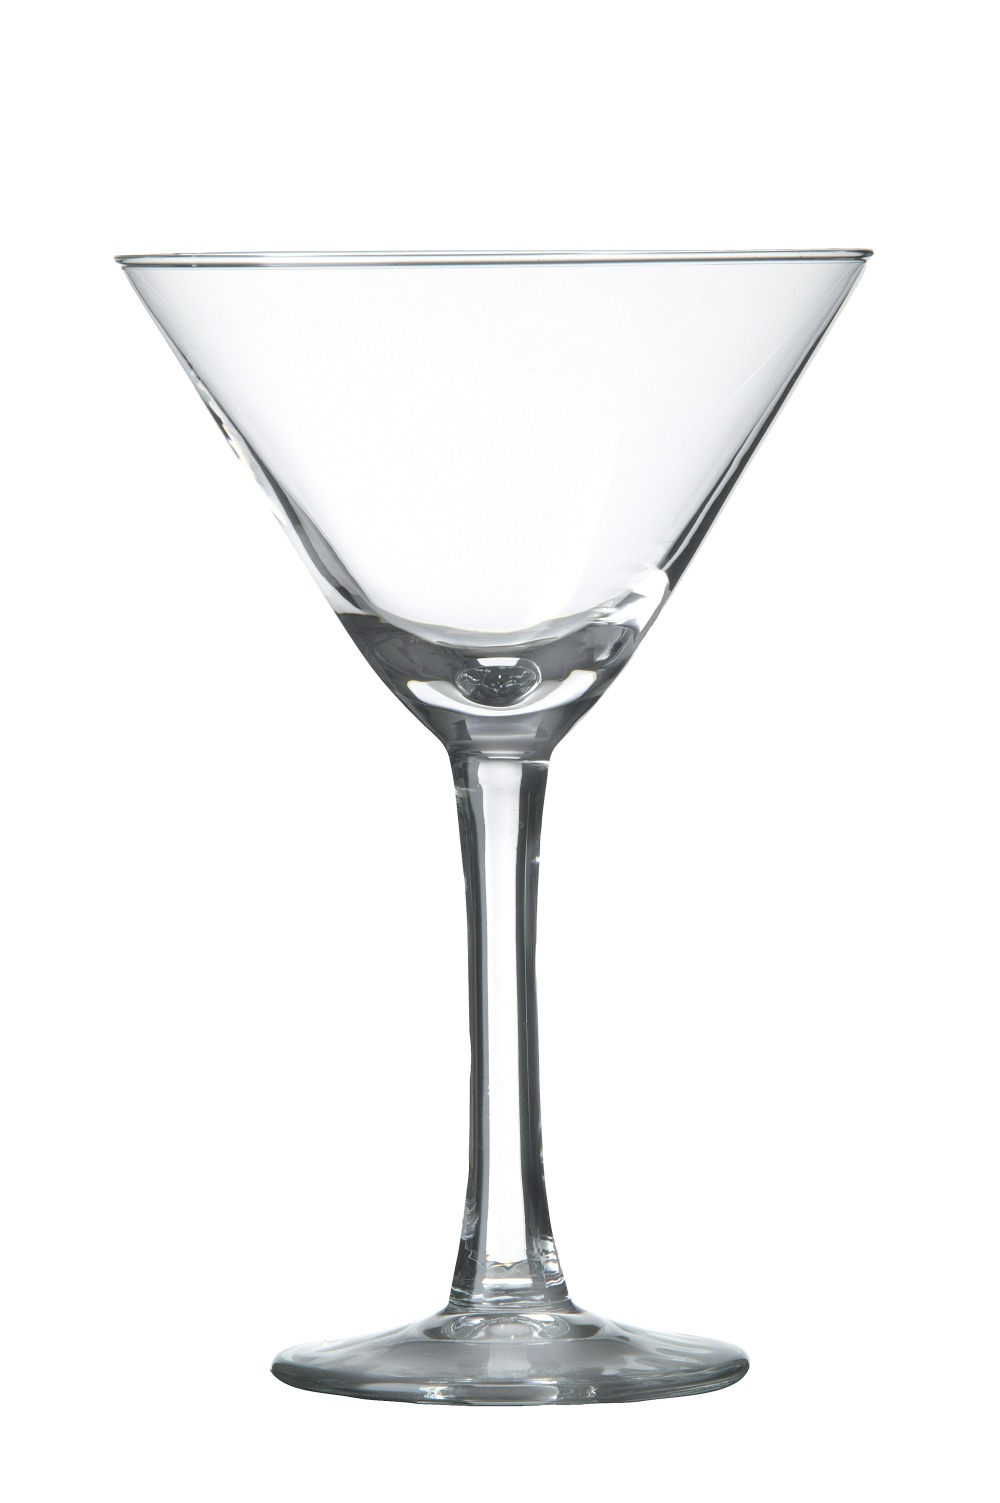 royal_leerdam_cocktailglas_specials_19cl.jpg